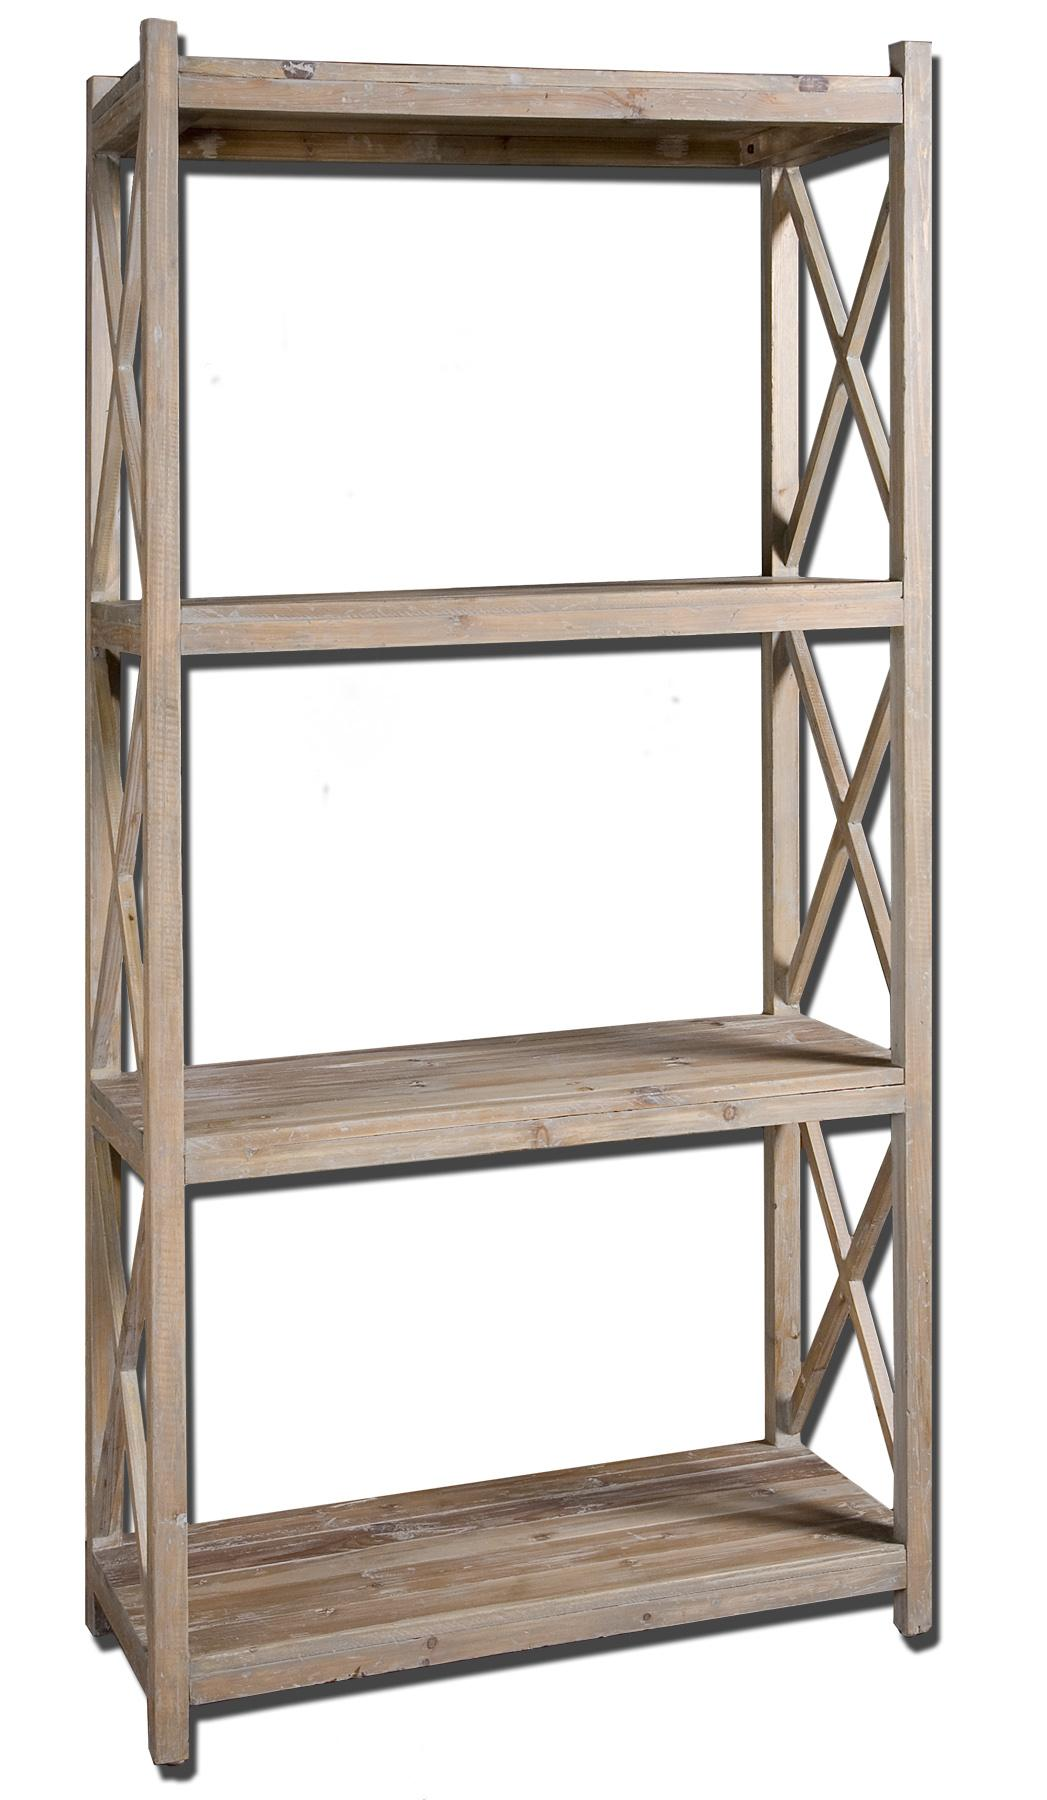 Accent Furniture - Bookcases Stratford Etagere at Rotmans